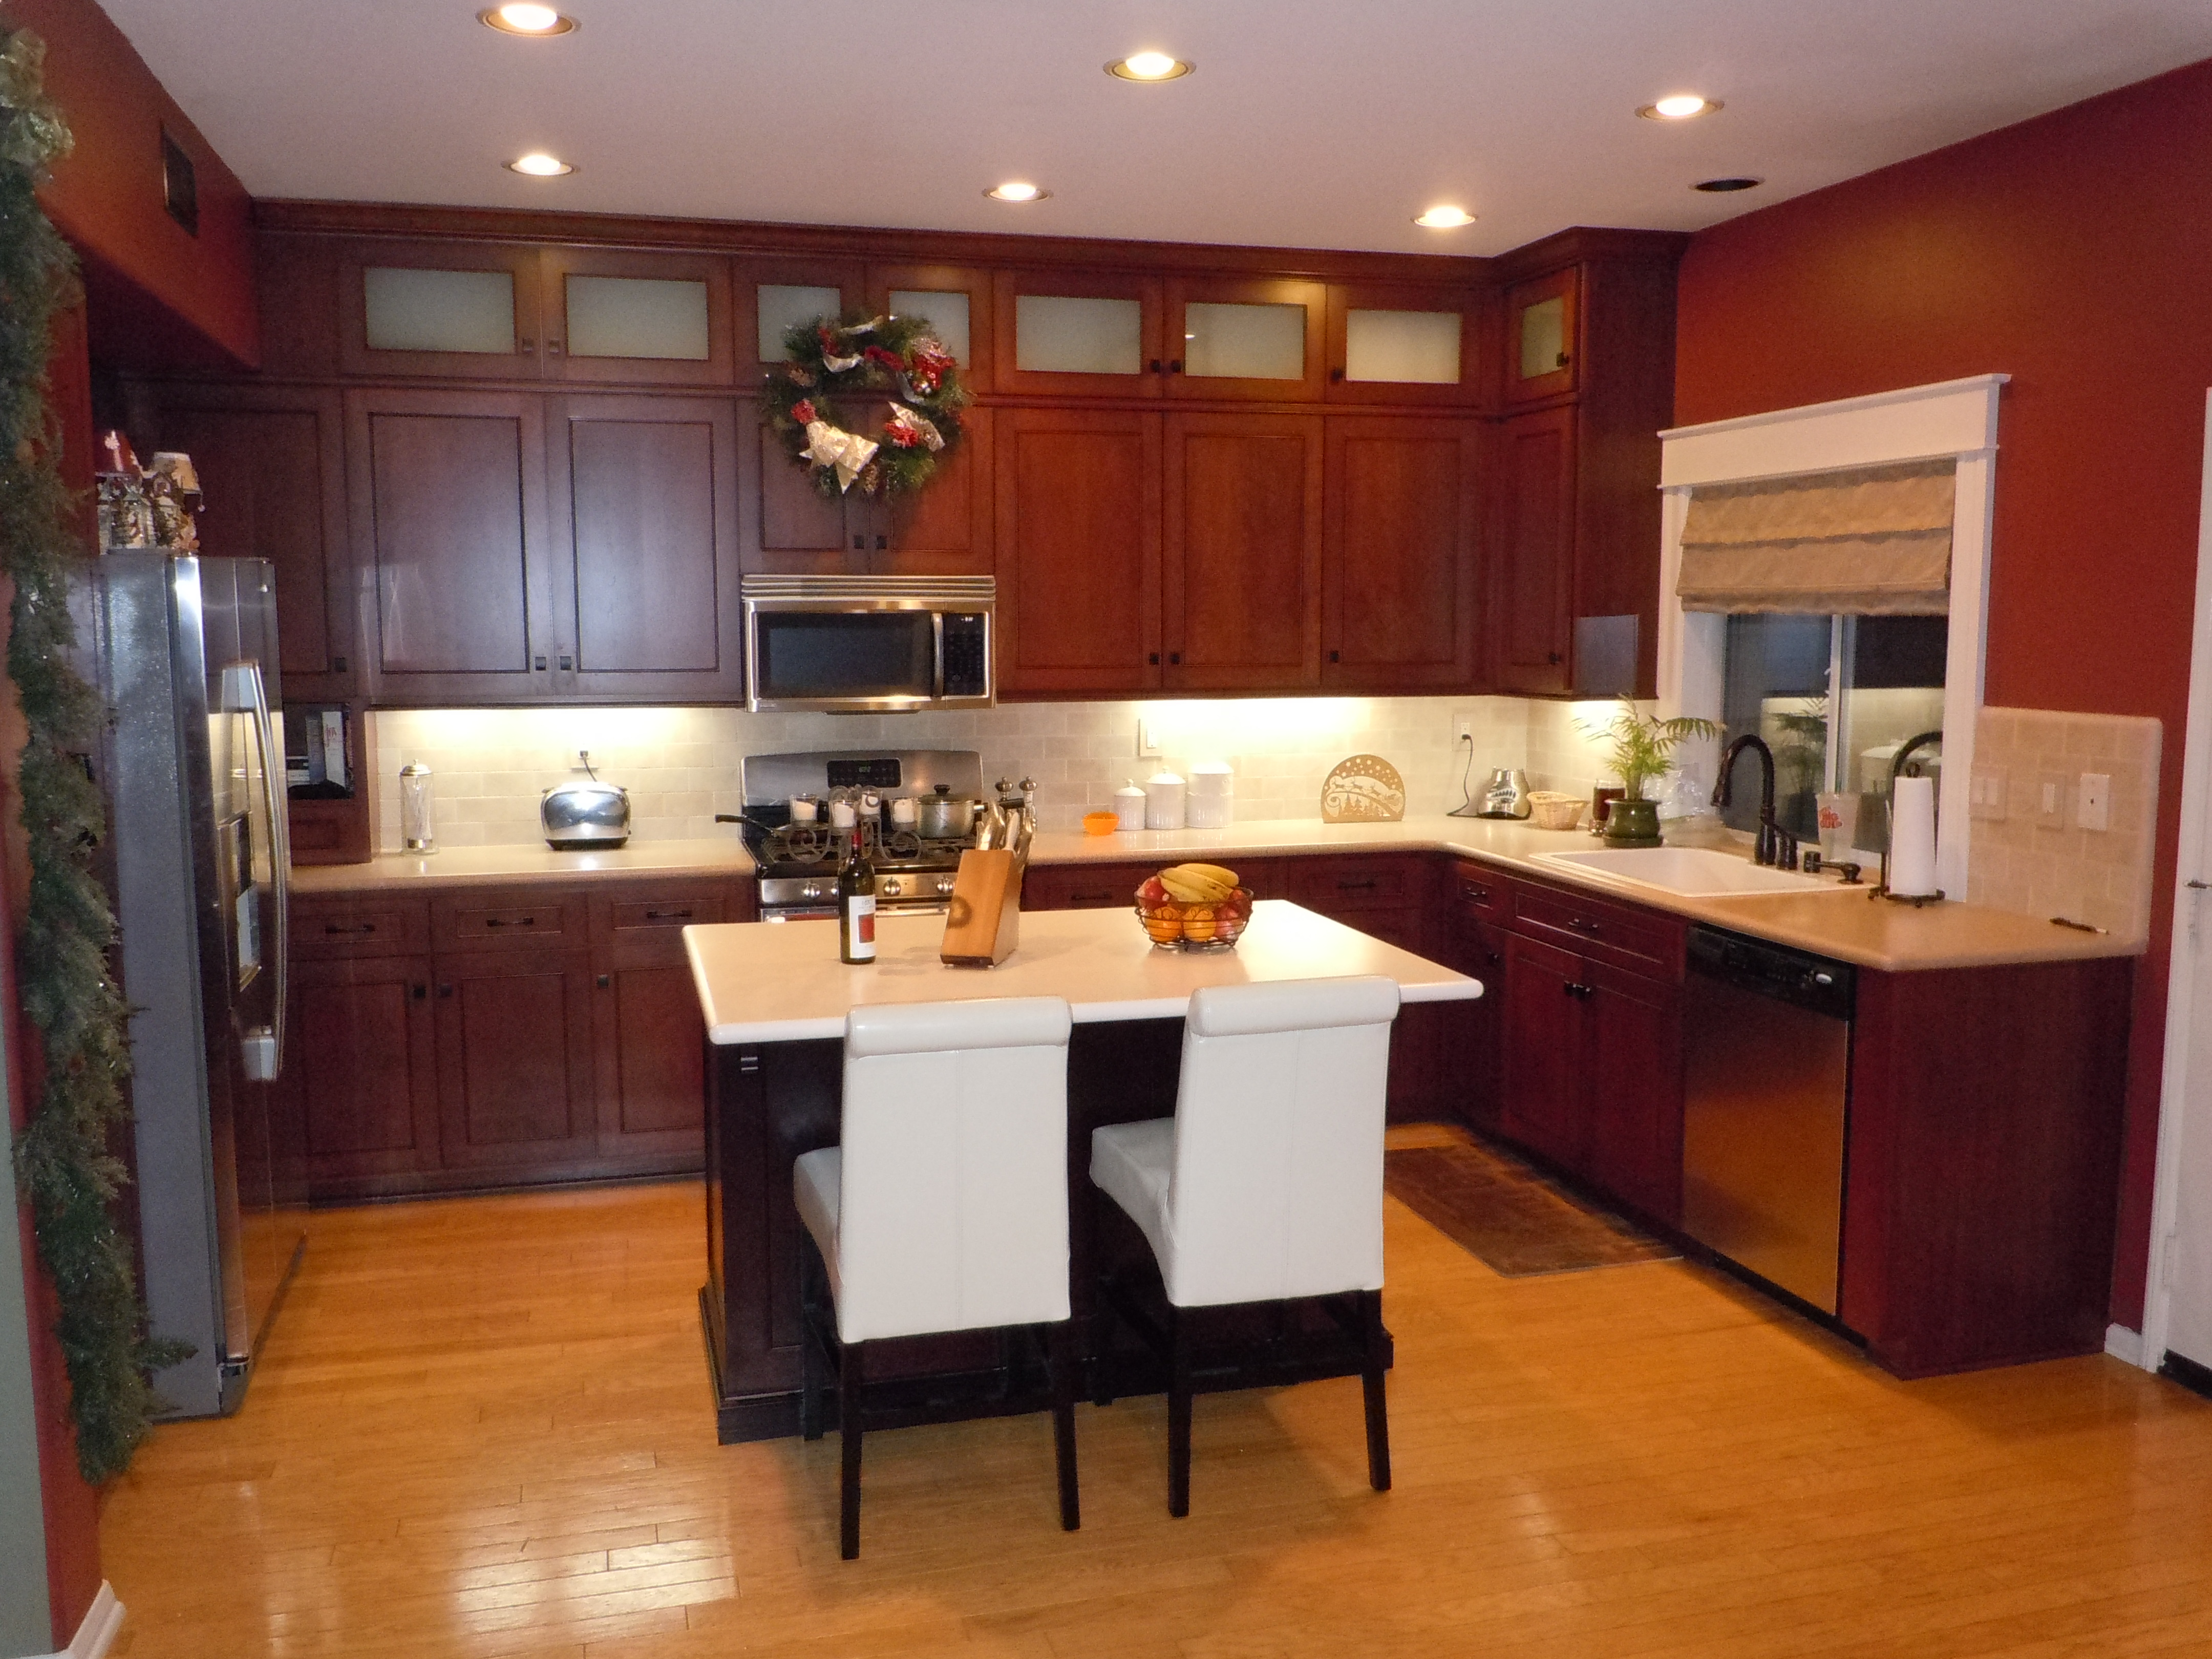 Design my kitchen layout kitchen layout and decor ideas How to redesign your kitchen